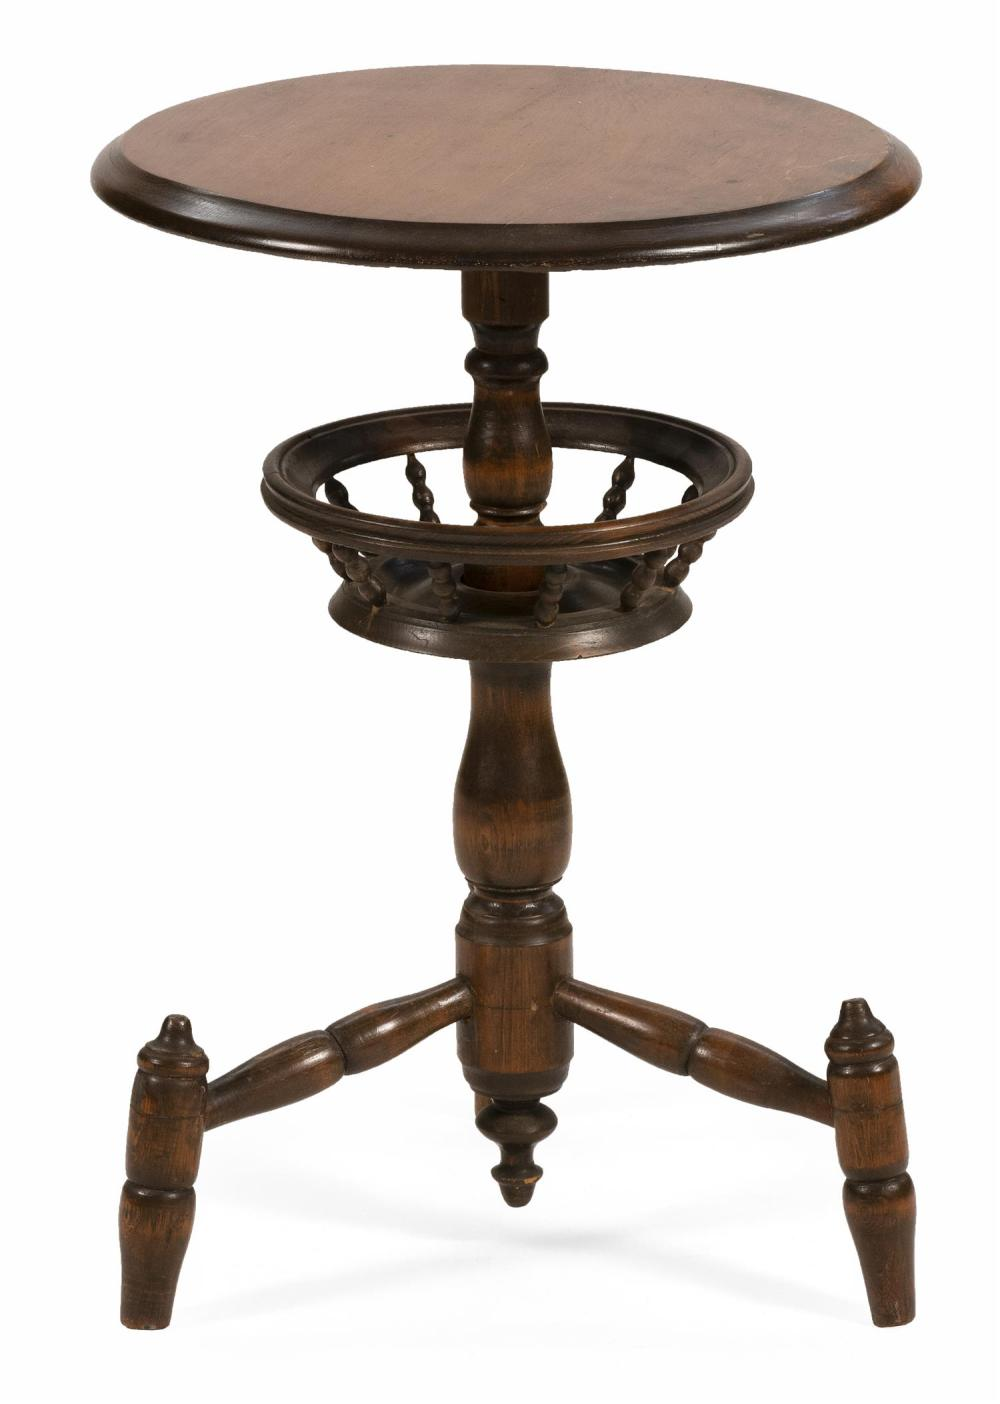 18TH CENTURY-STYLE TABLE In hardwood and pine. Molded-edge top. Pedestal supports a medial sewing basket and is raised on extended t...